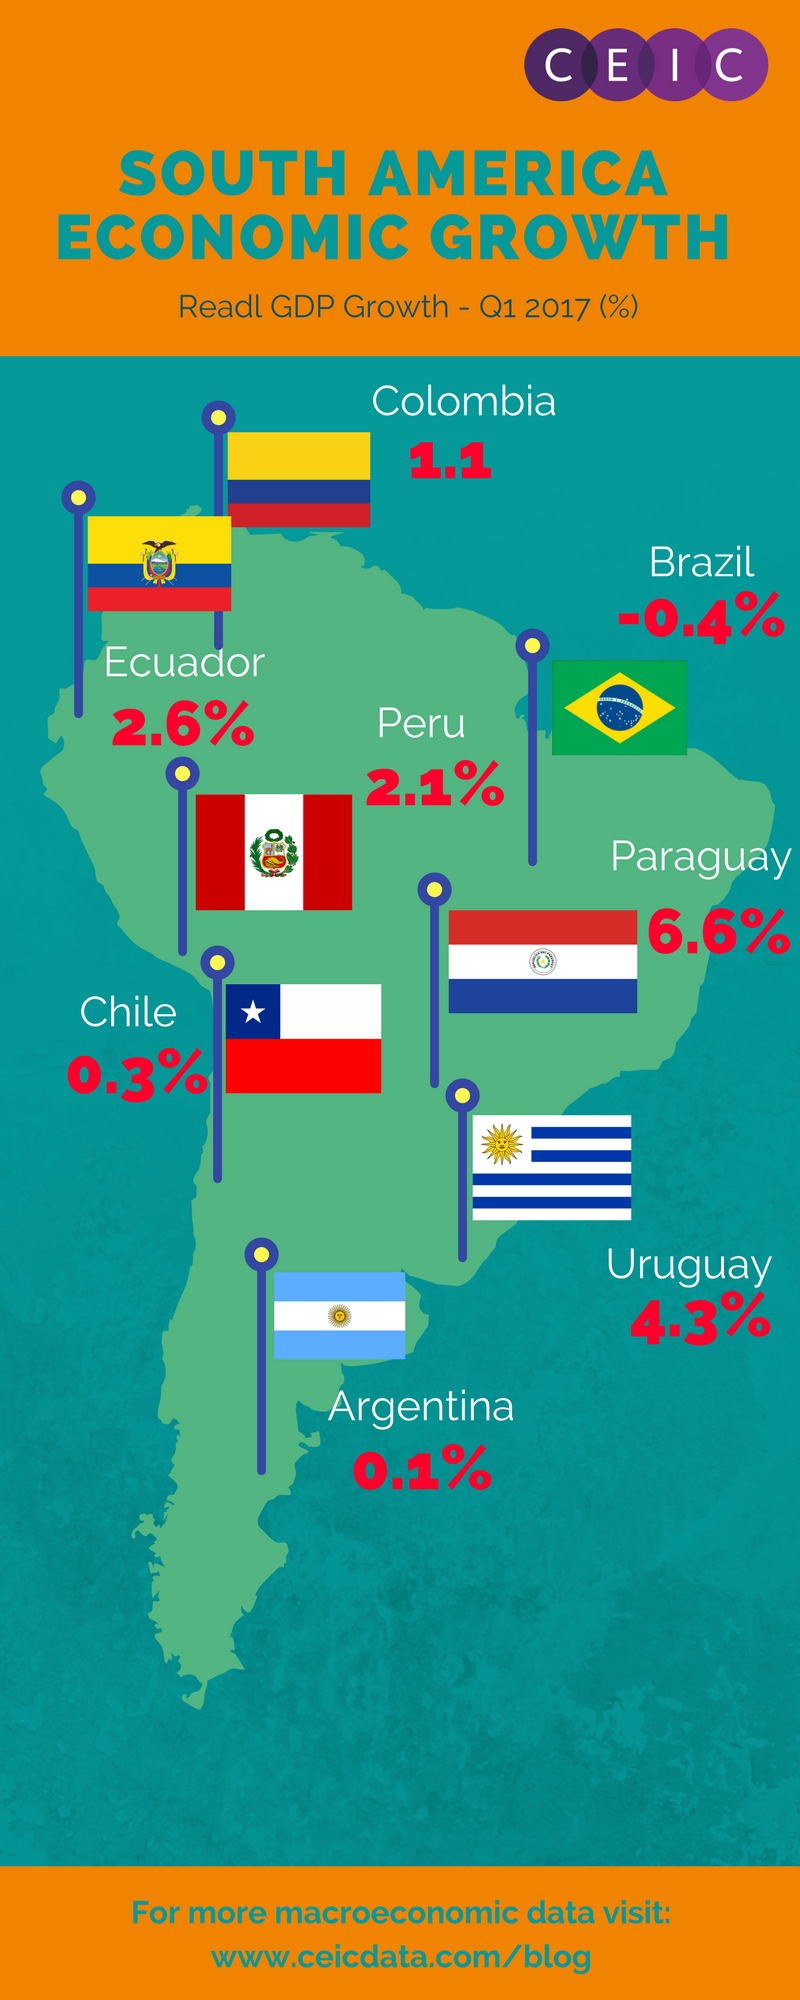 South America Economic Growth